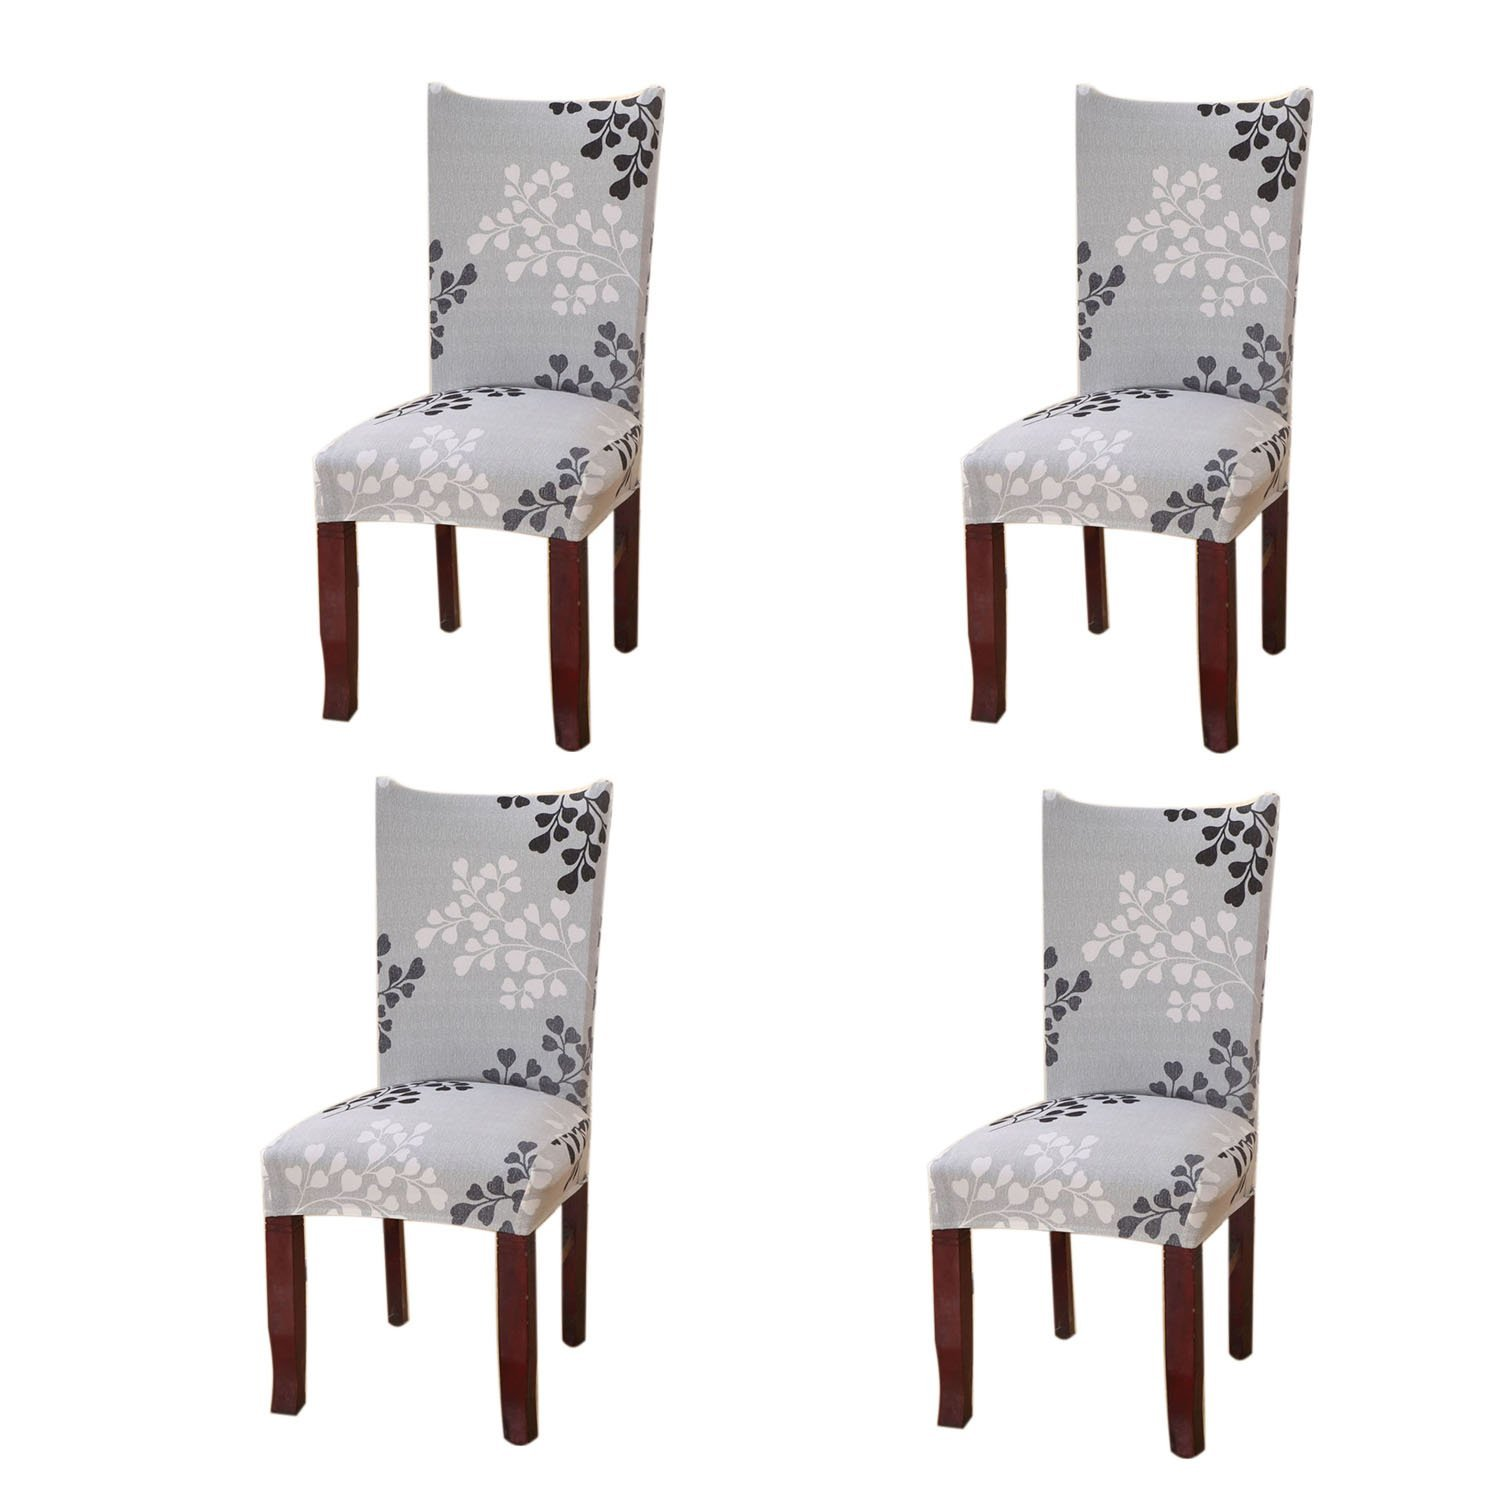 Bestjybt Stretch Removable Washable Short Dining Chair Protect Cover Slipcover (4, Style 22)